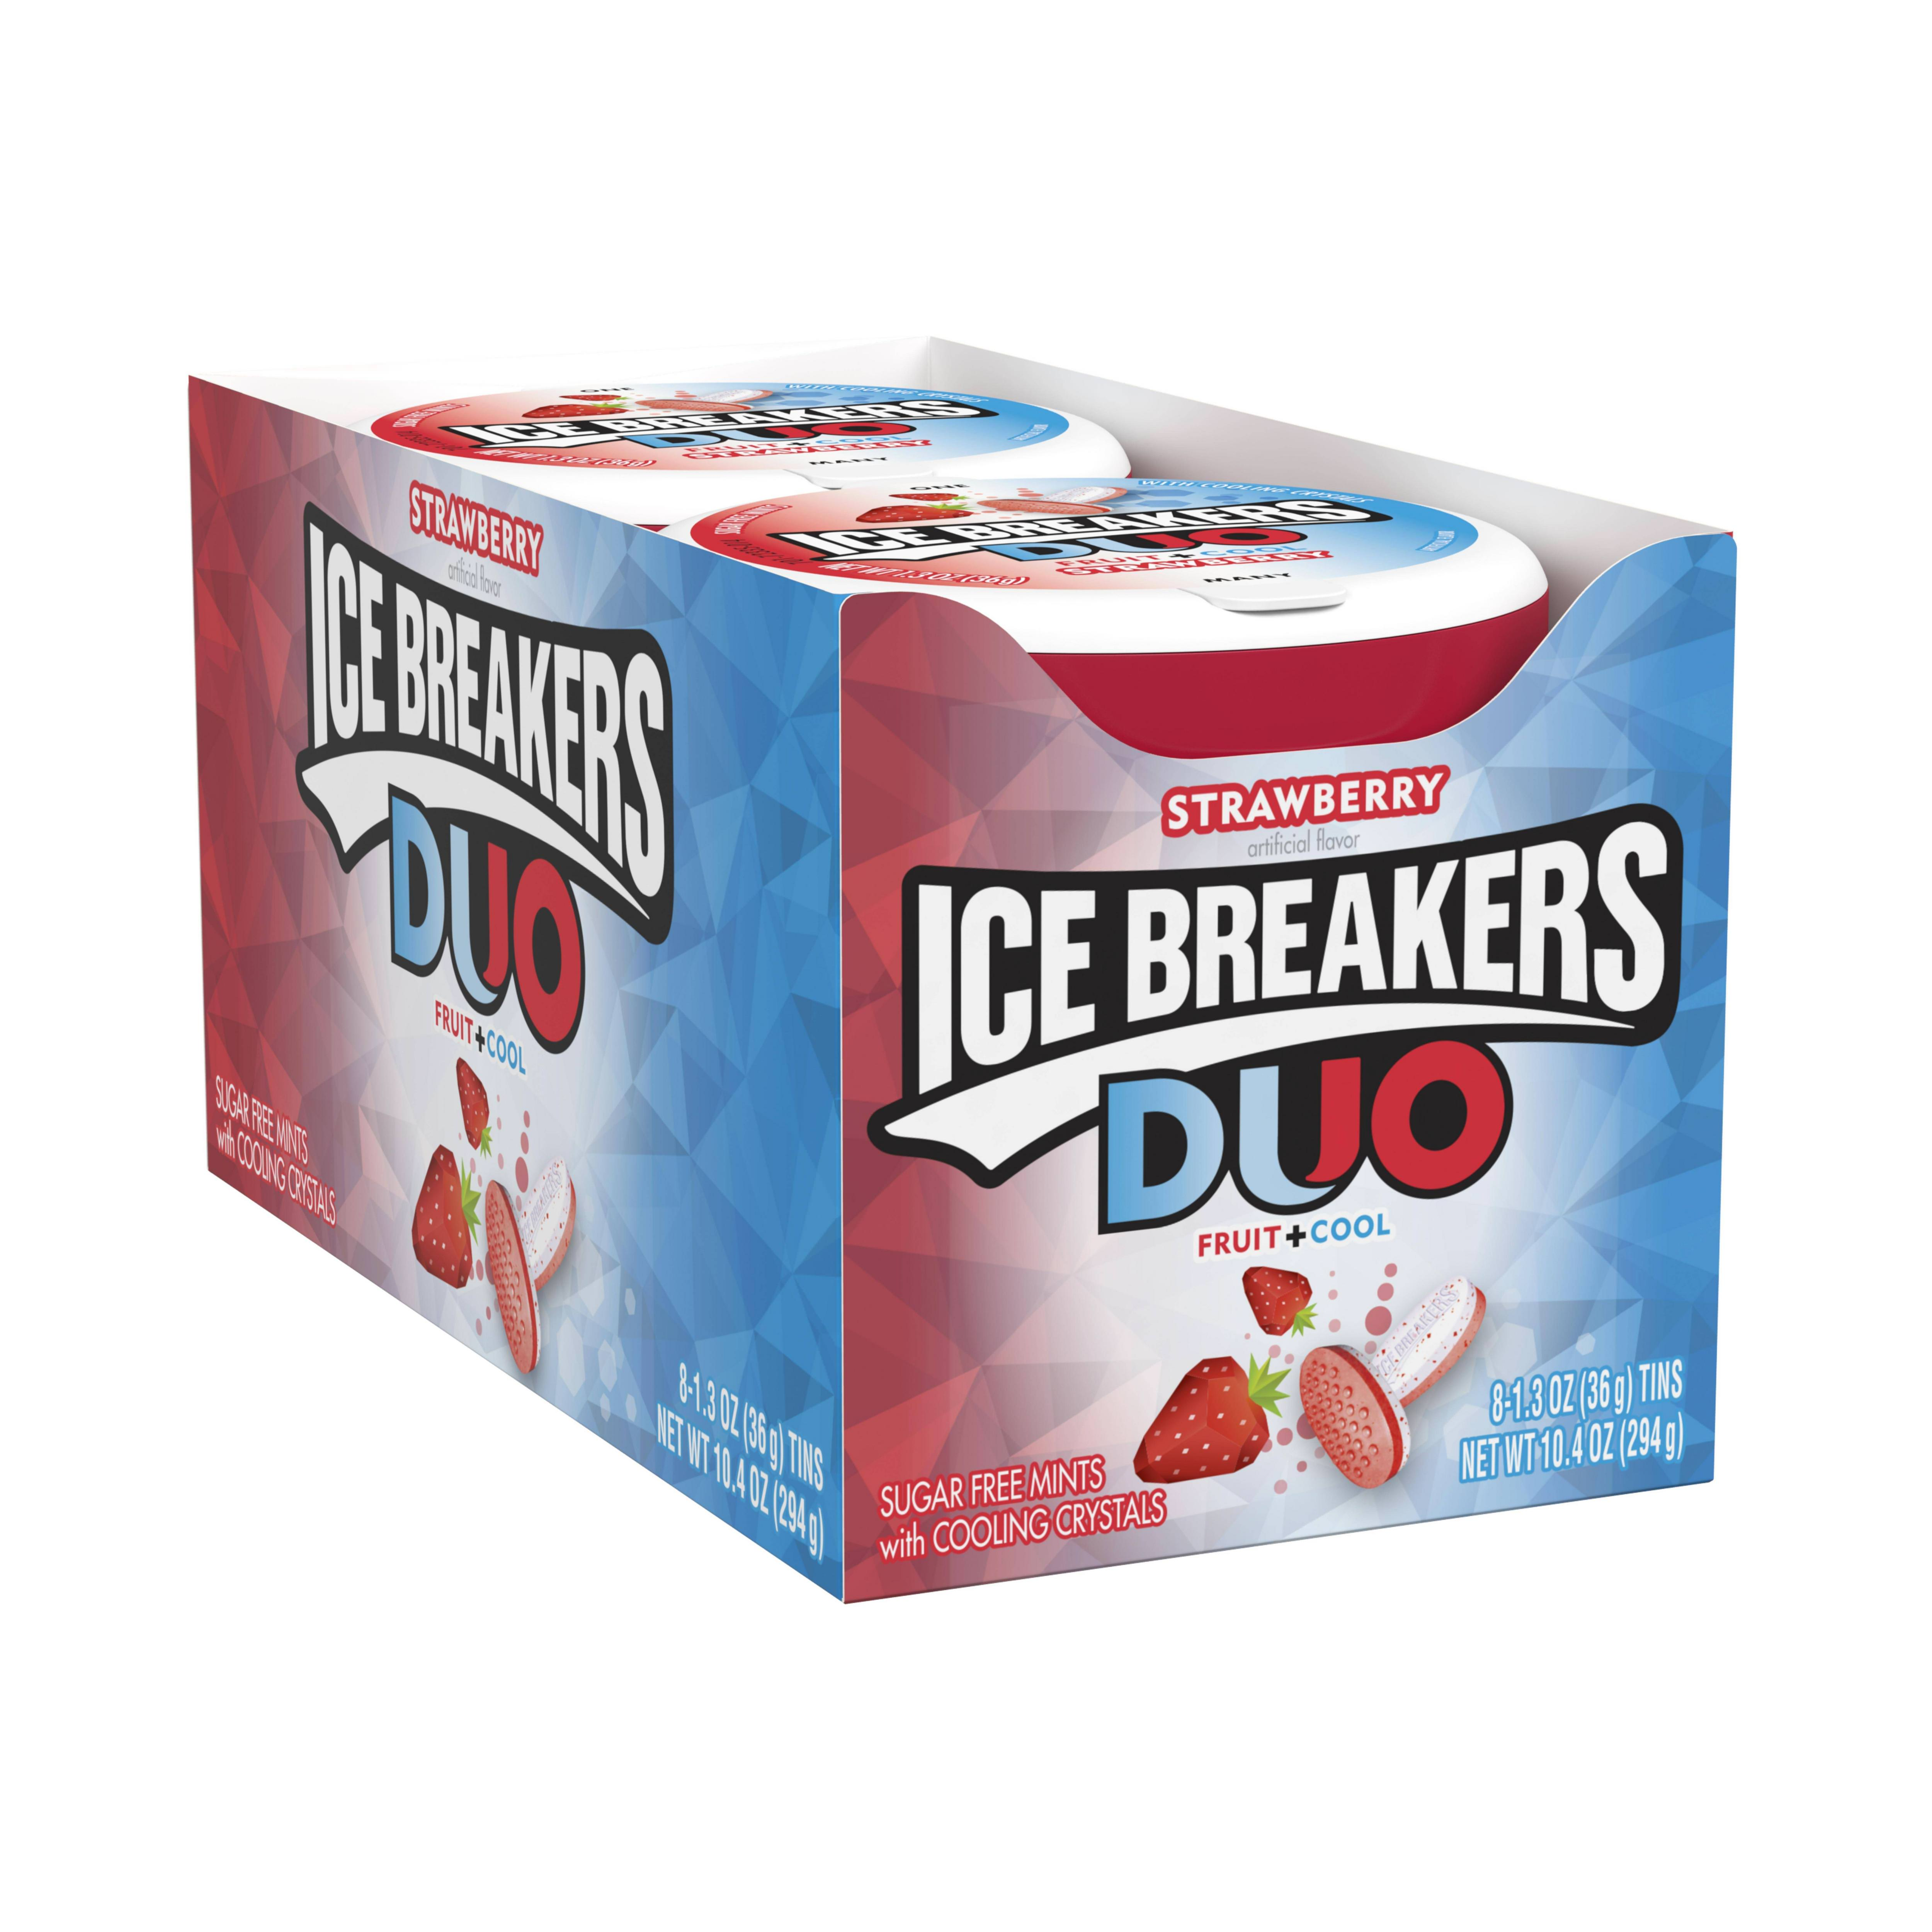 Ice Breakers, Sugar Free Duo Fruit & Cool Strawberry, 1.3 Oz, 8 Ct